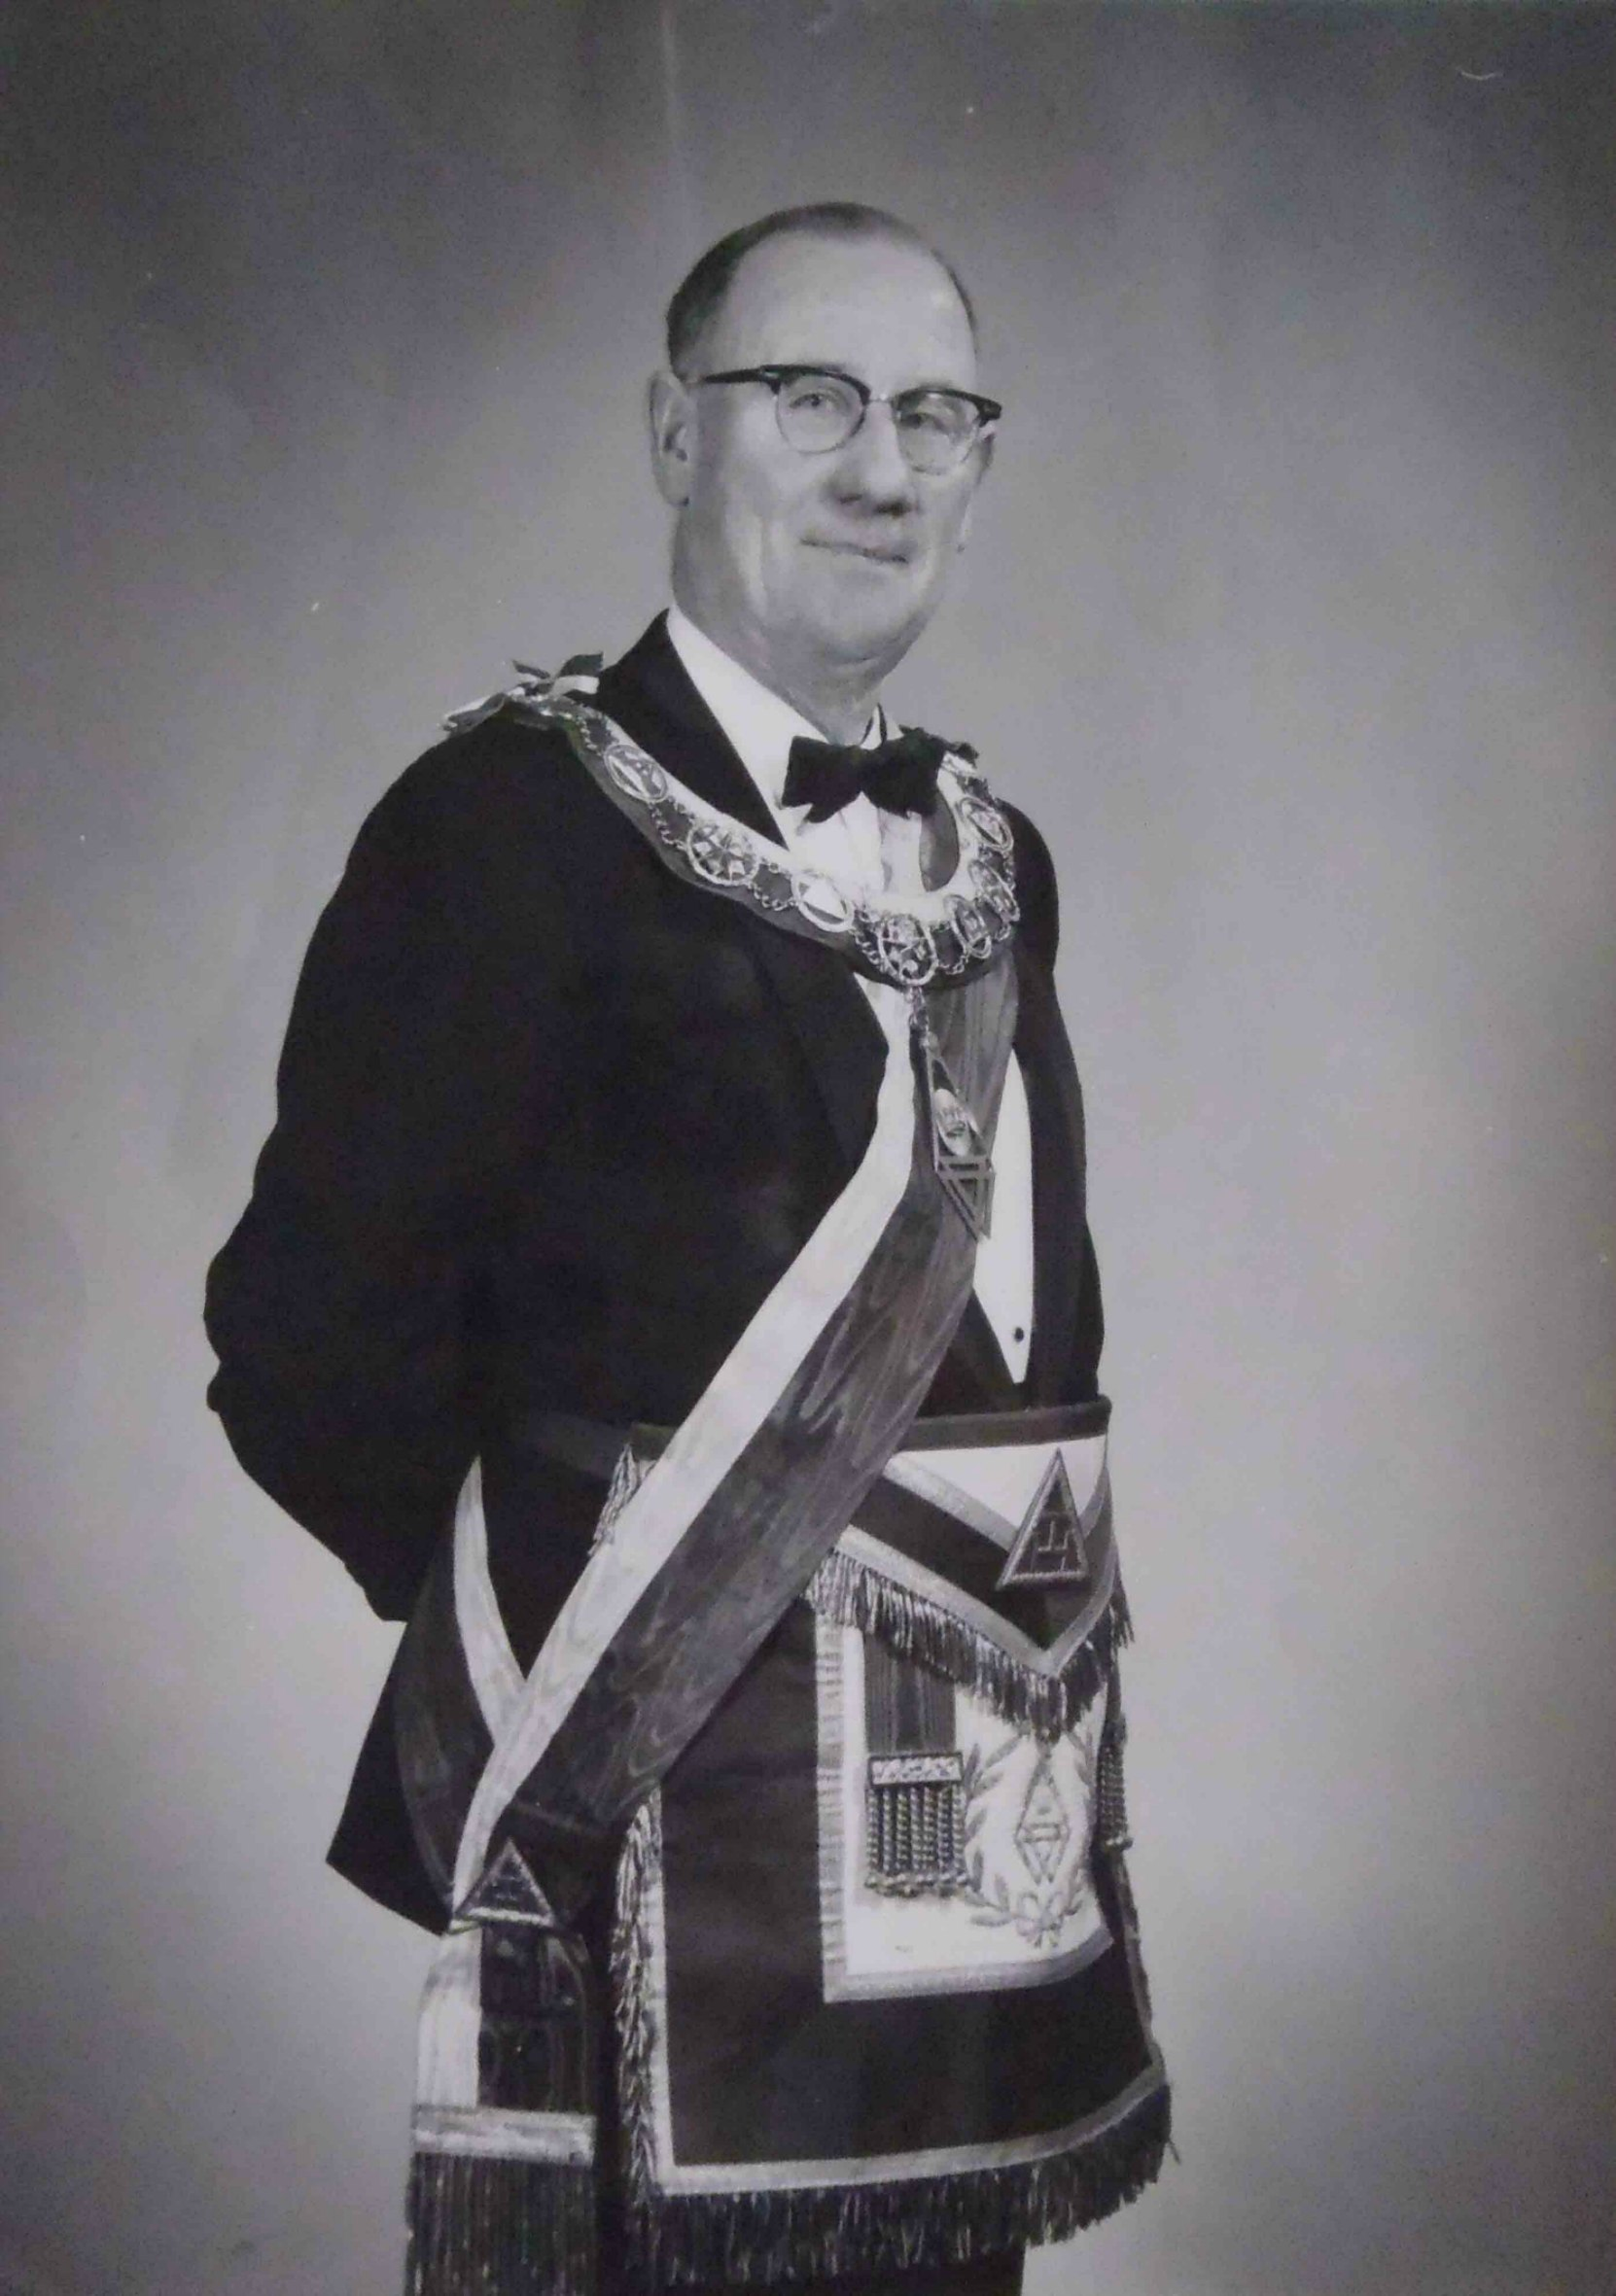 John Stanley Dyke, 1st Principal of Tzouhalem Chapter, No.26 in 1949